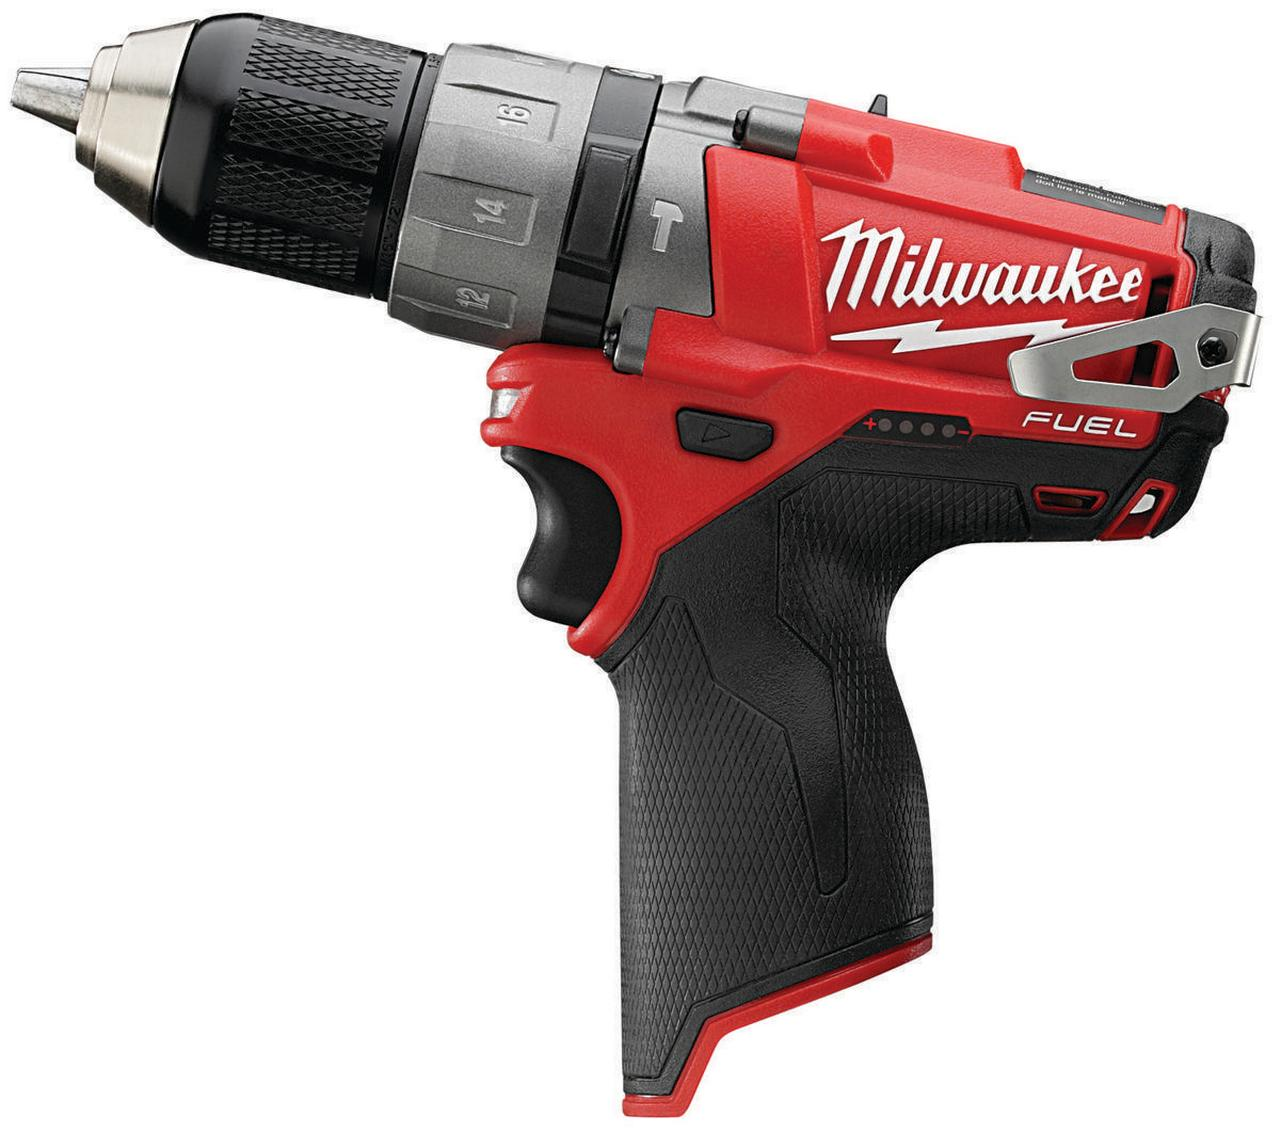 Milwaukee M12 Cordless Hammer Drill Driver, 12 V, Lithium-Ion, 1 2 in Keyless Chuck by Milwaukee